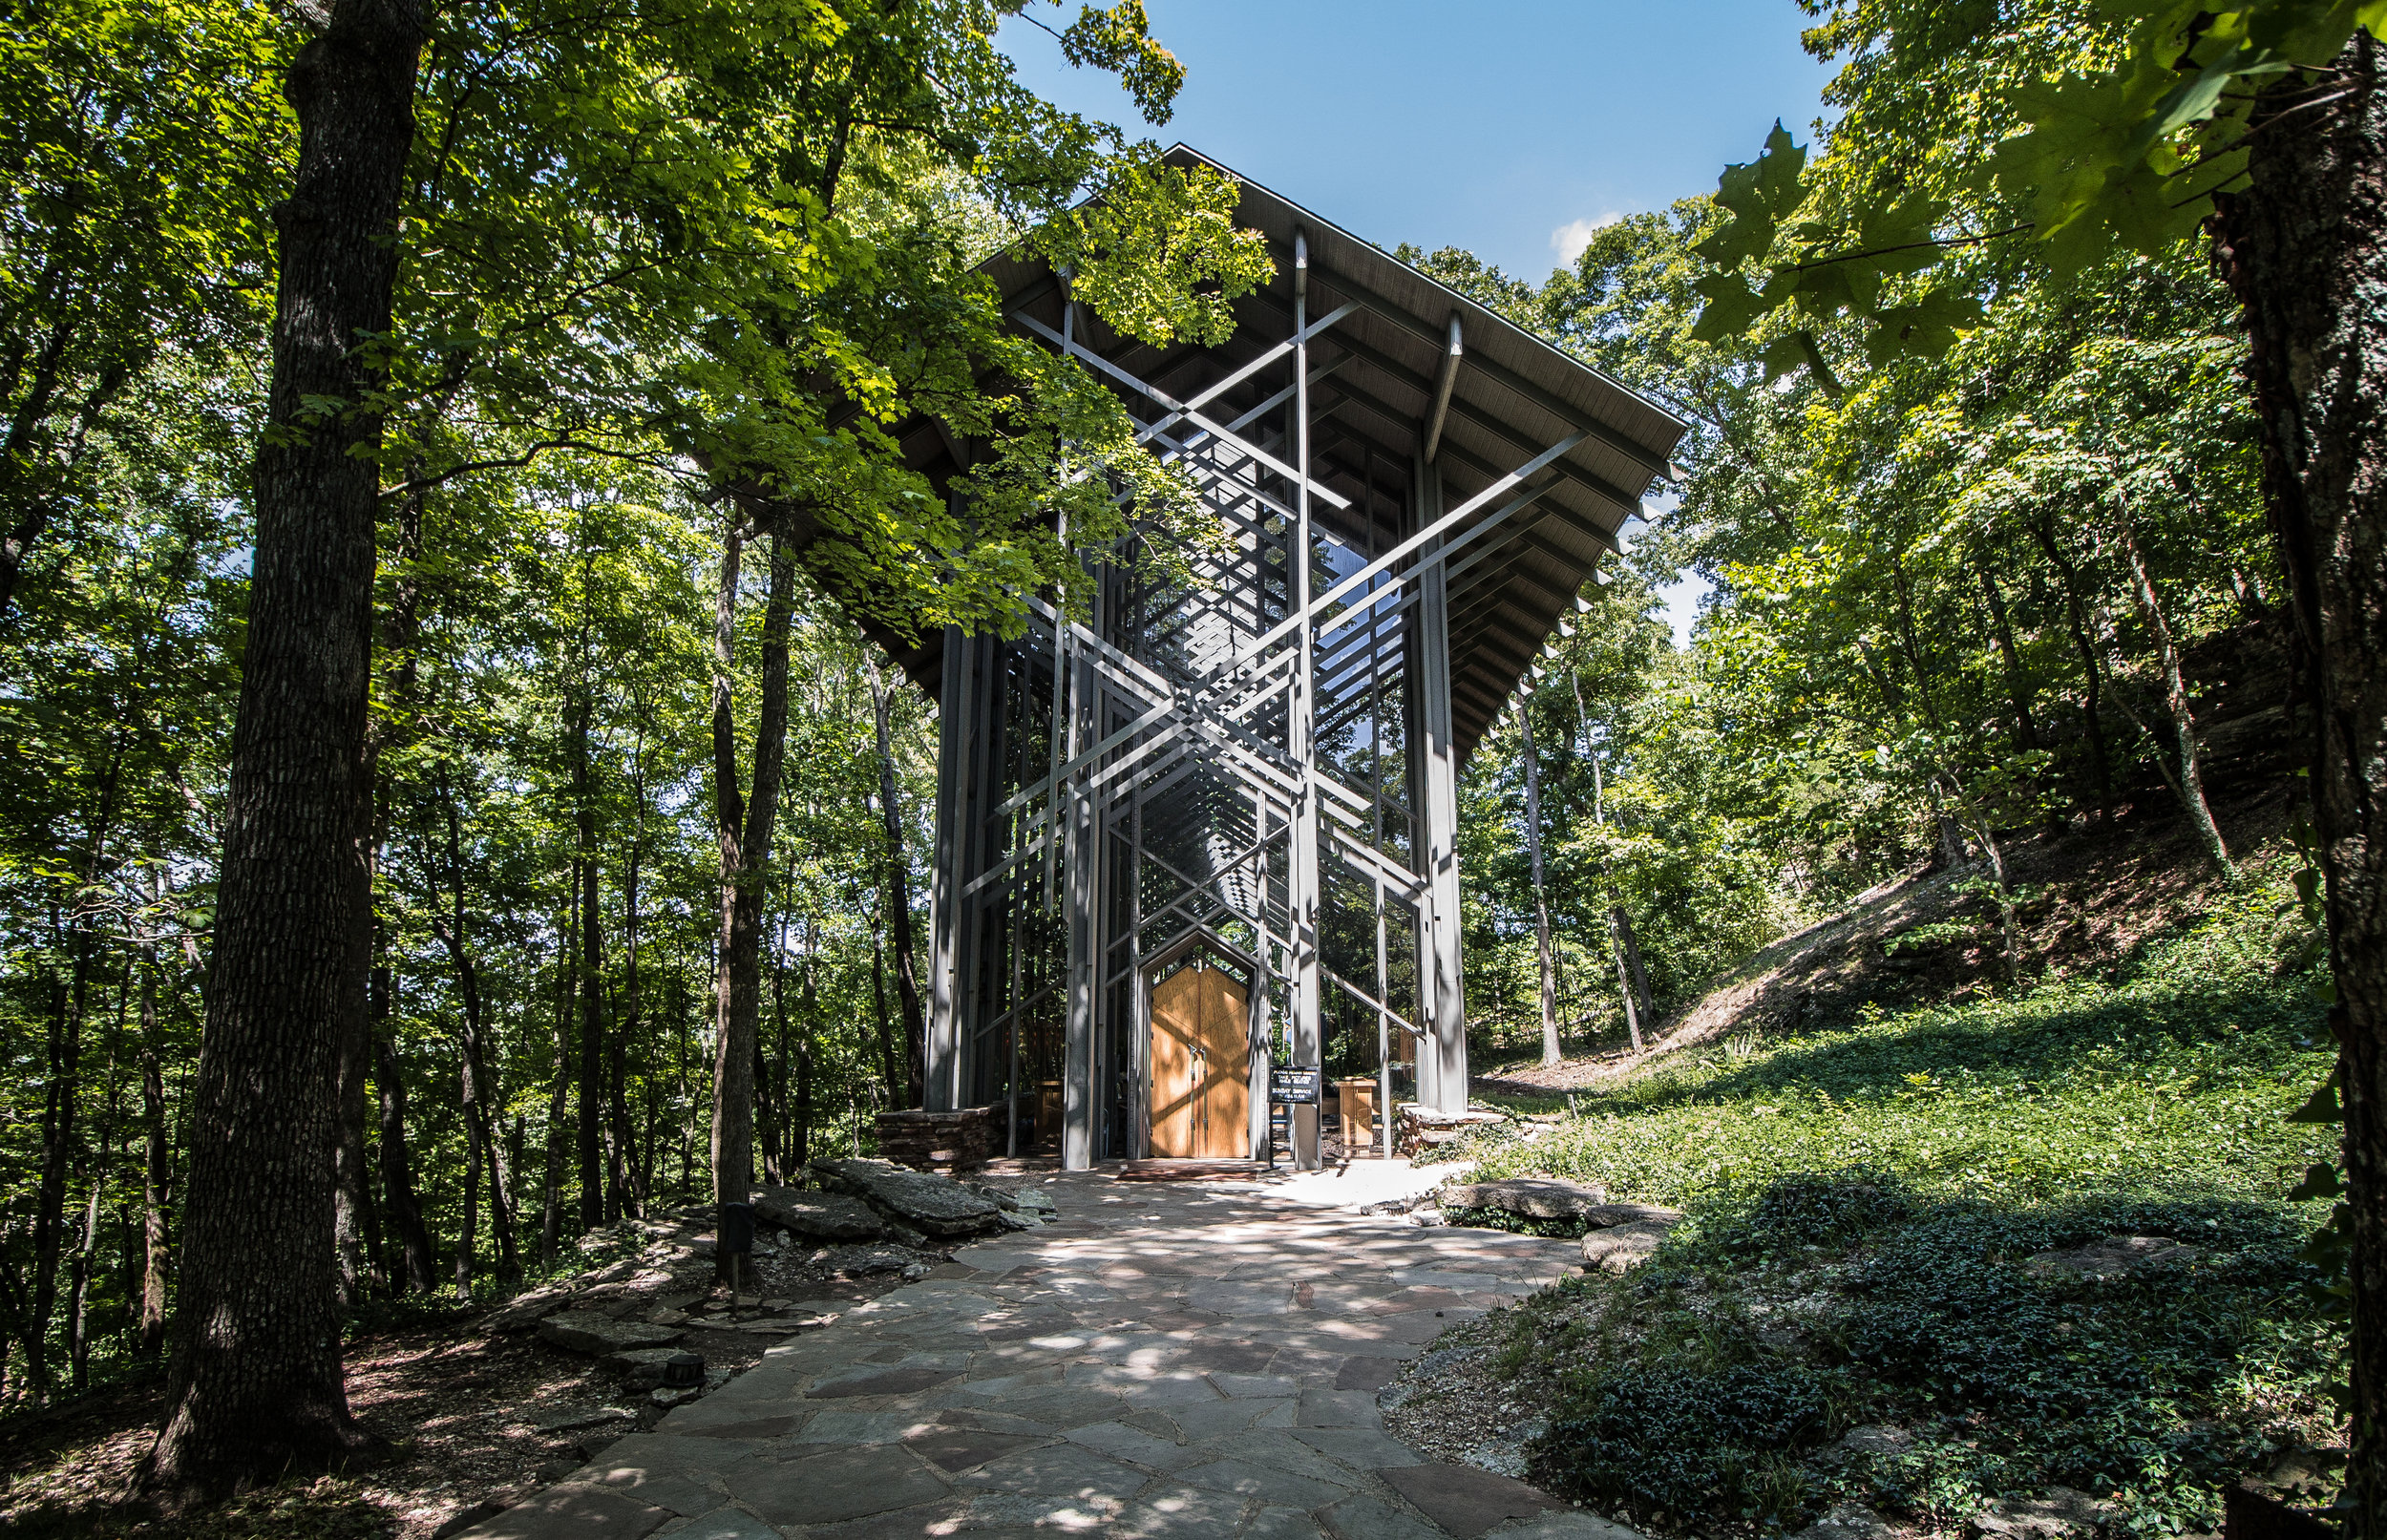 Thorncrown Chapel, tucked away in the beautiful Arkansas nature.